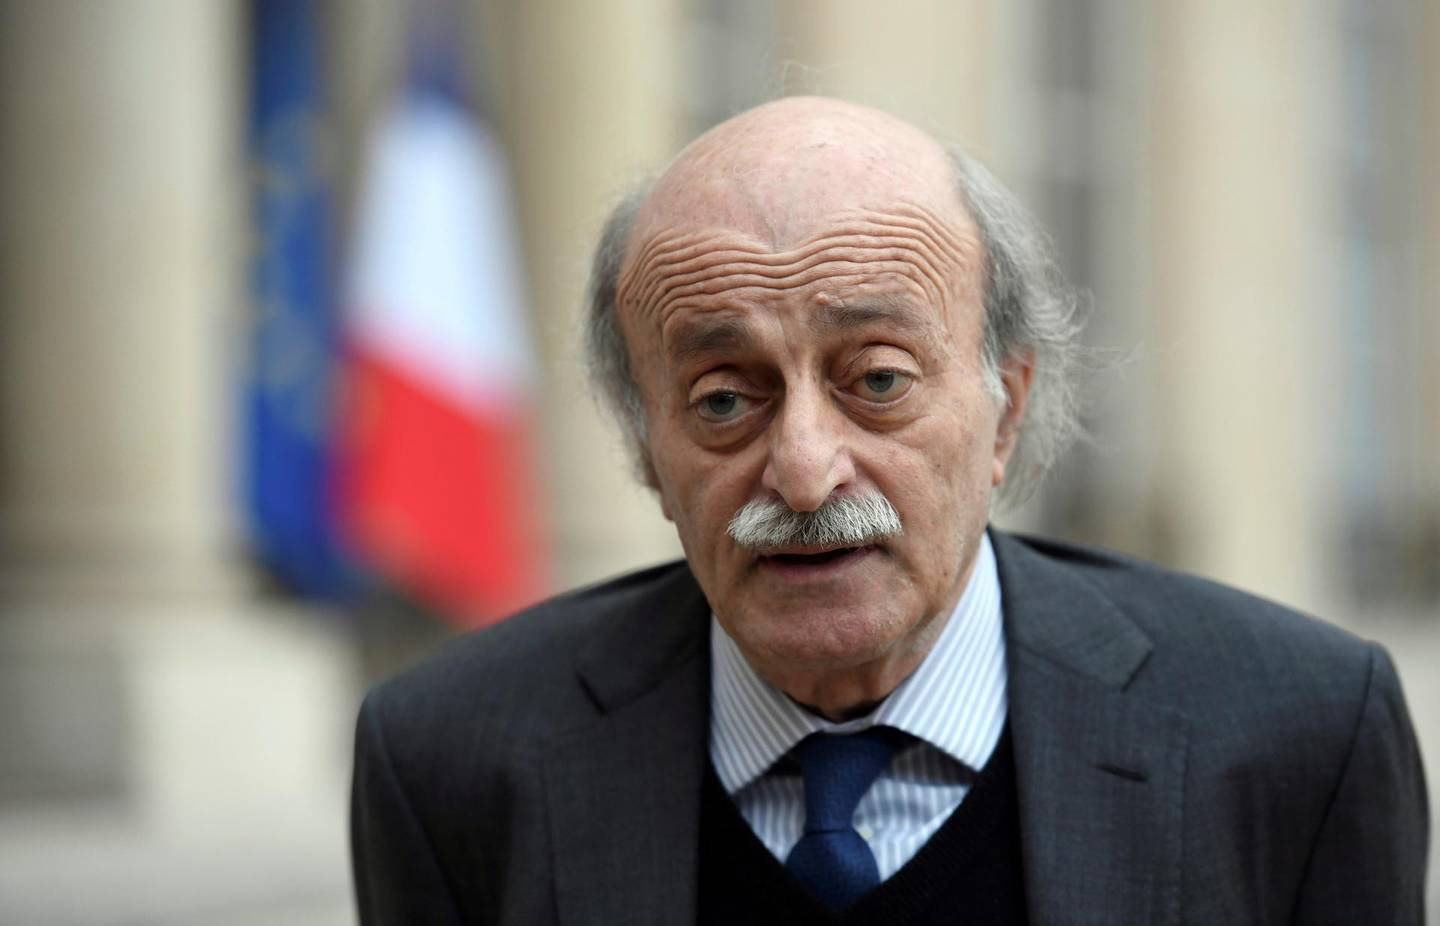 Lebanese Druze leader Walid Joumblatt makes a statement after his meeting with French President on February 21, 2017 at the Elysee Presidential Palace in Paris.  / AFP PHOTO / STEPHANE DE SAKUTIN